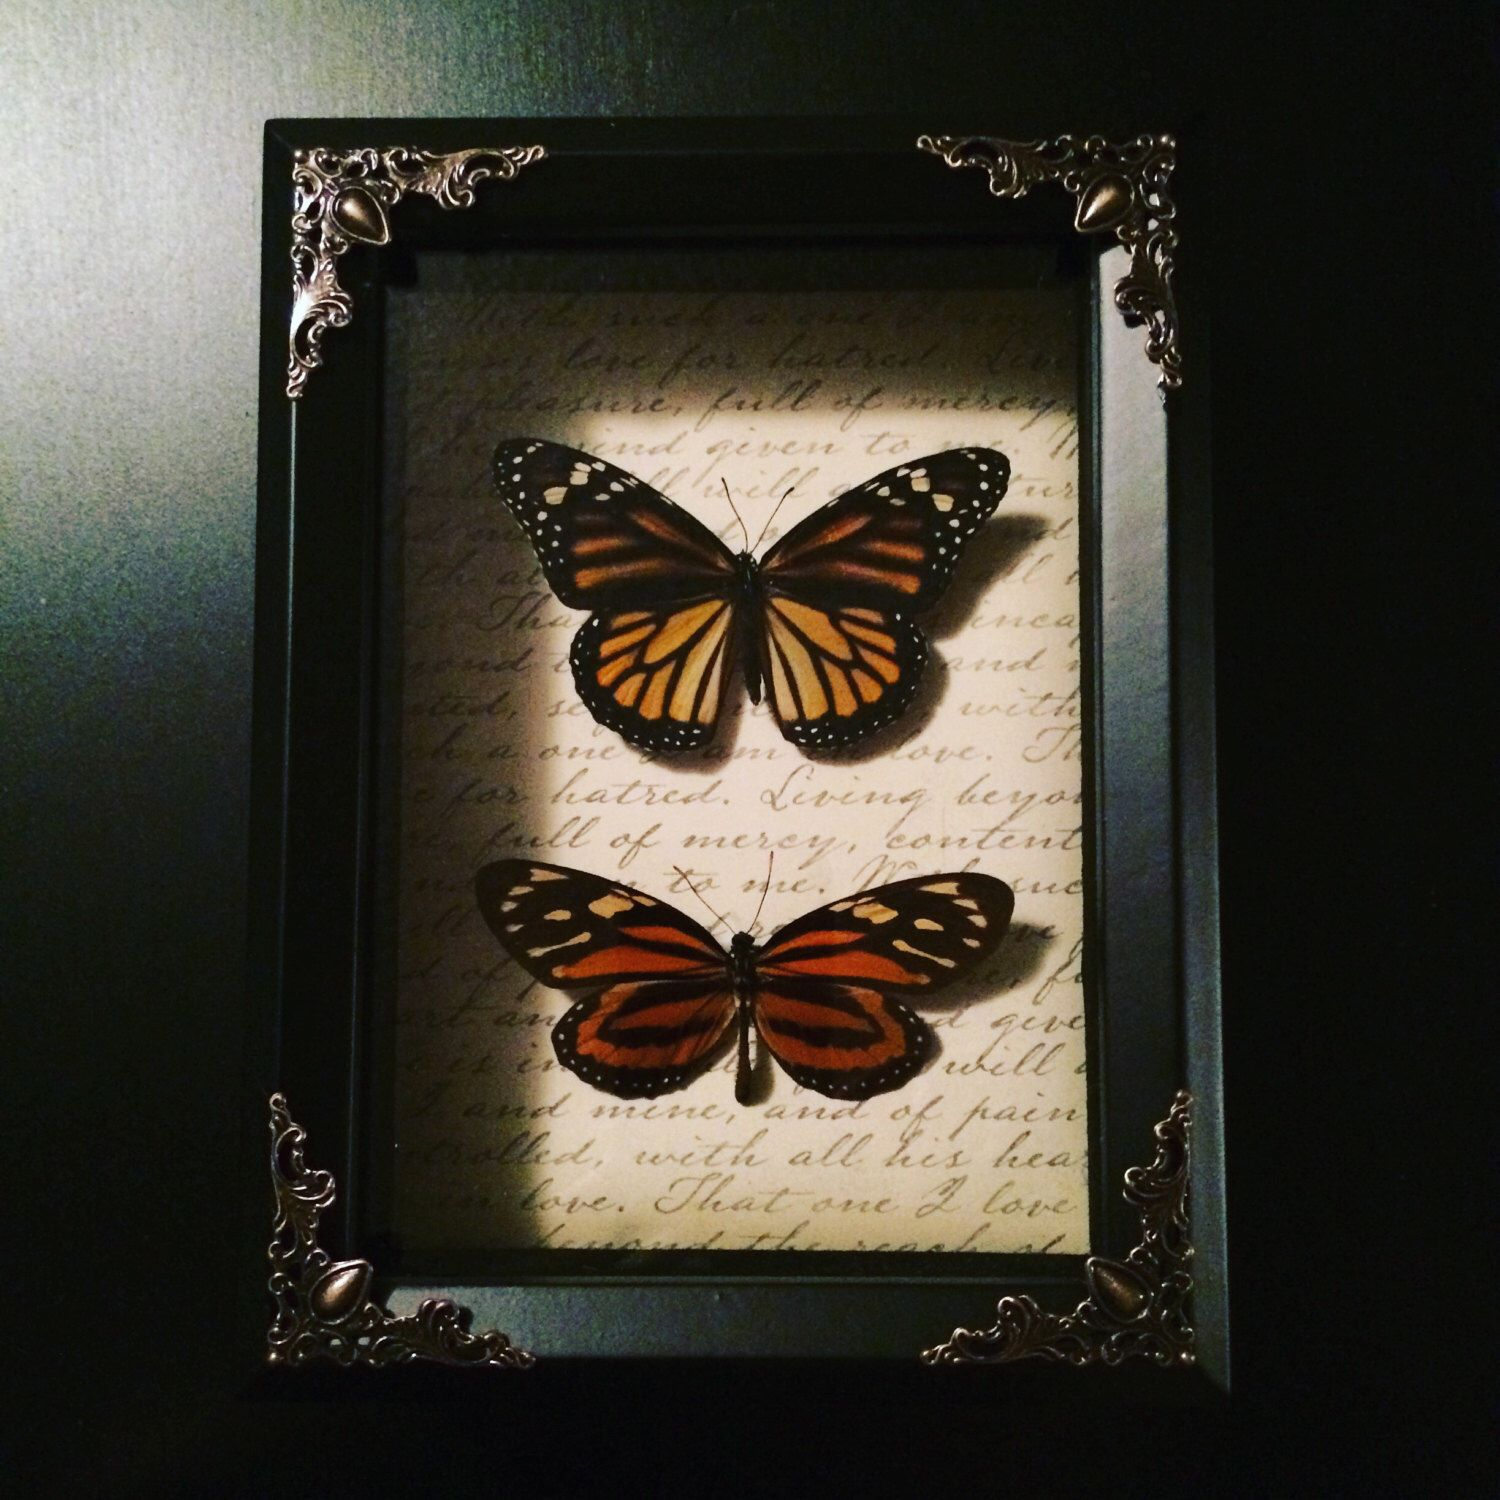 Mounted monarch tropical milkweed butterfly shadow box